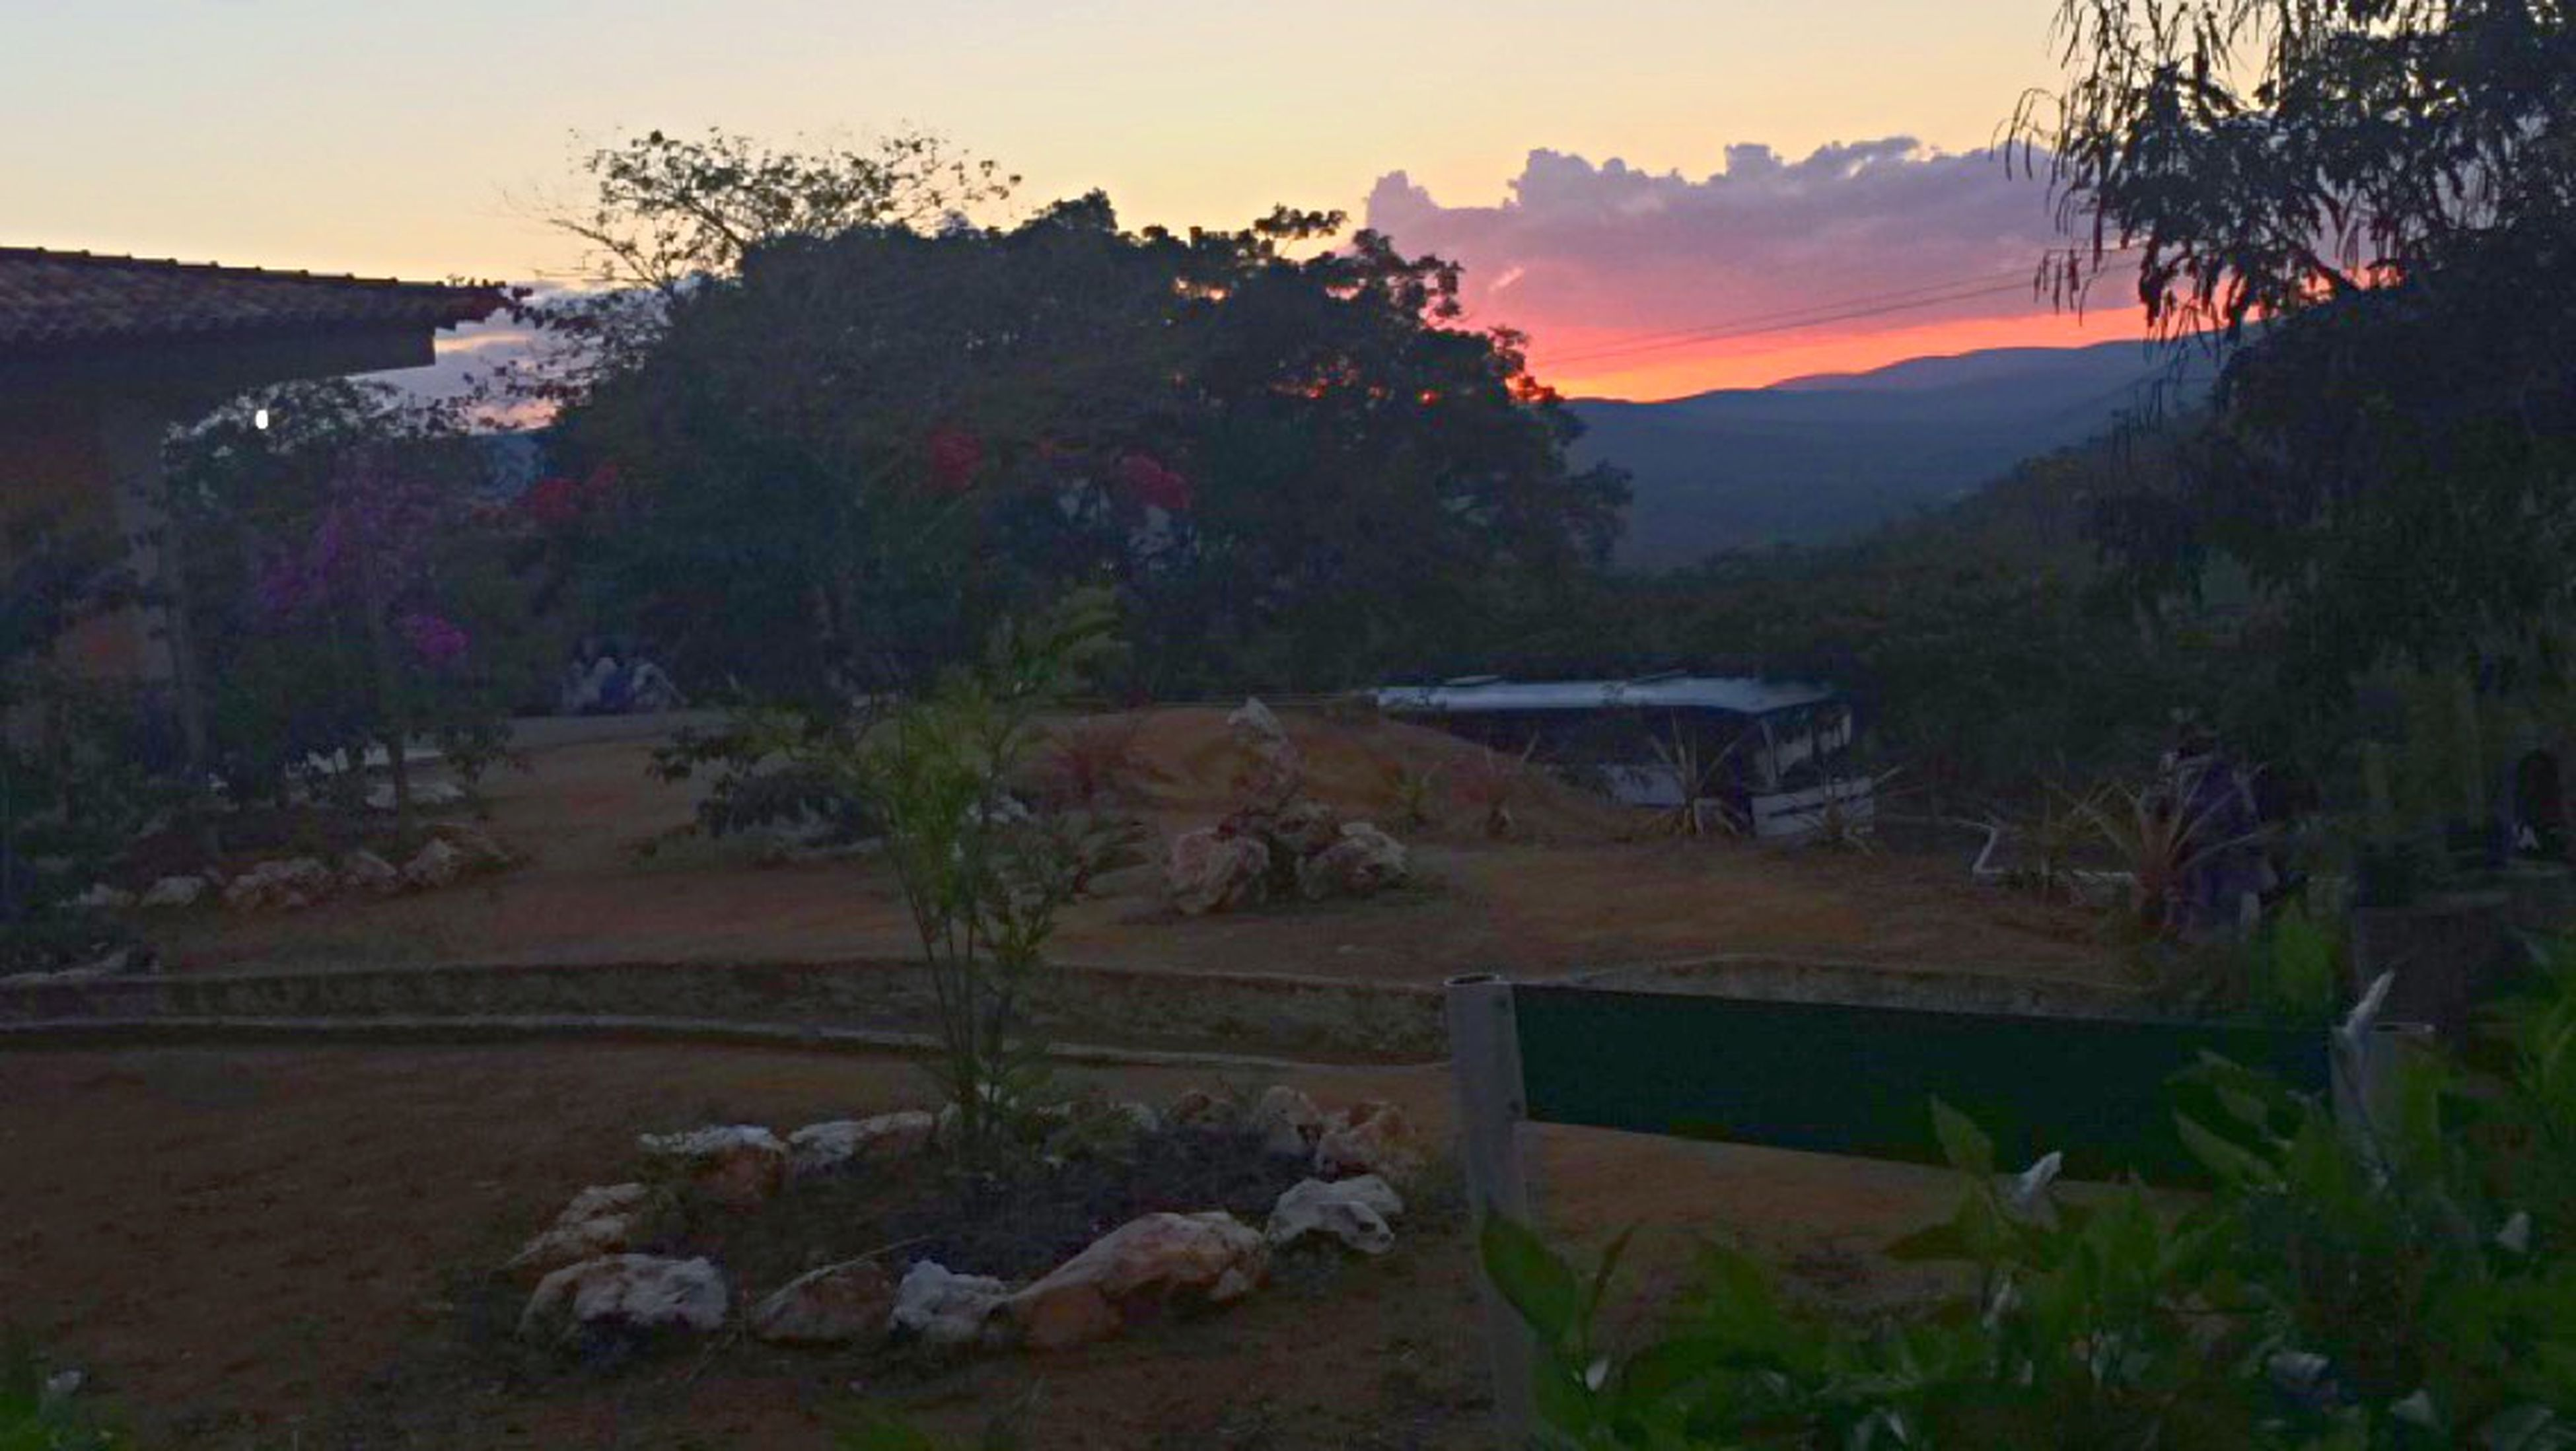 tree, sunset, mountain, tranquil scene, beauty in nature, tranquility, scenics, sky, nature, orange color, growth, built structure, idyllic, rock - object, house, landscape, dusk, outdoors, non-urban scene, no people